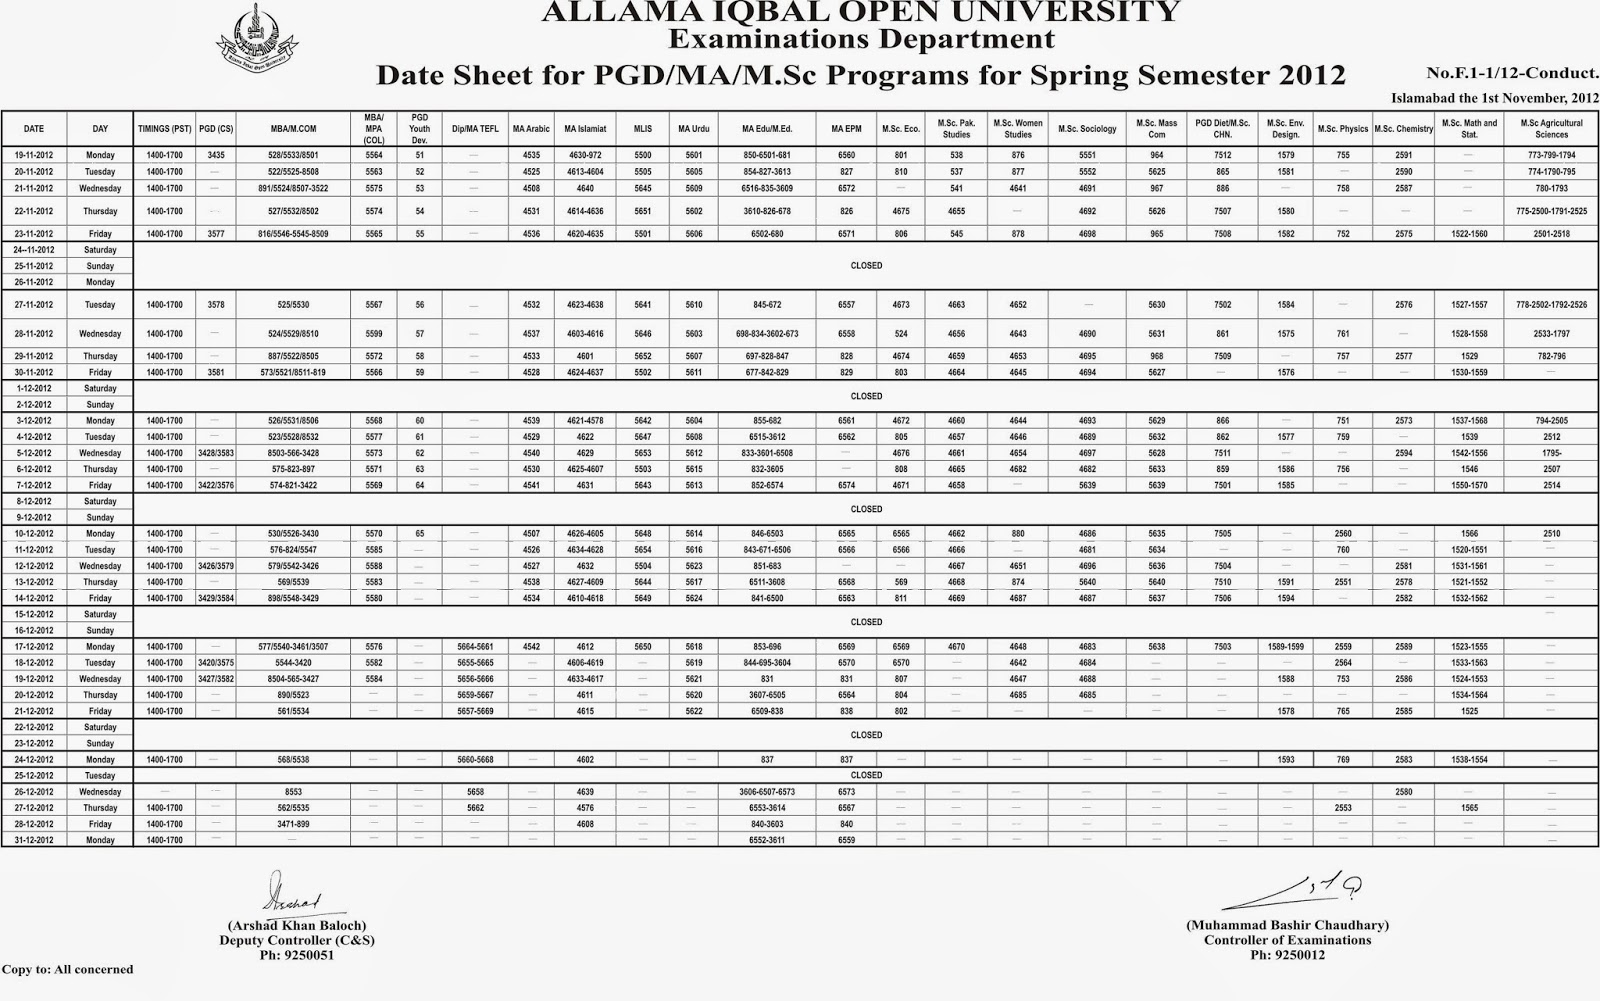 AIOU Post Graduate Programs, Masters, MA, MEd, MSc, PGD Date Sheet 2013